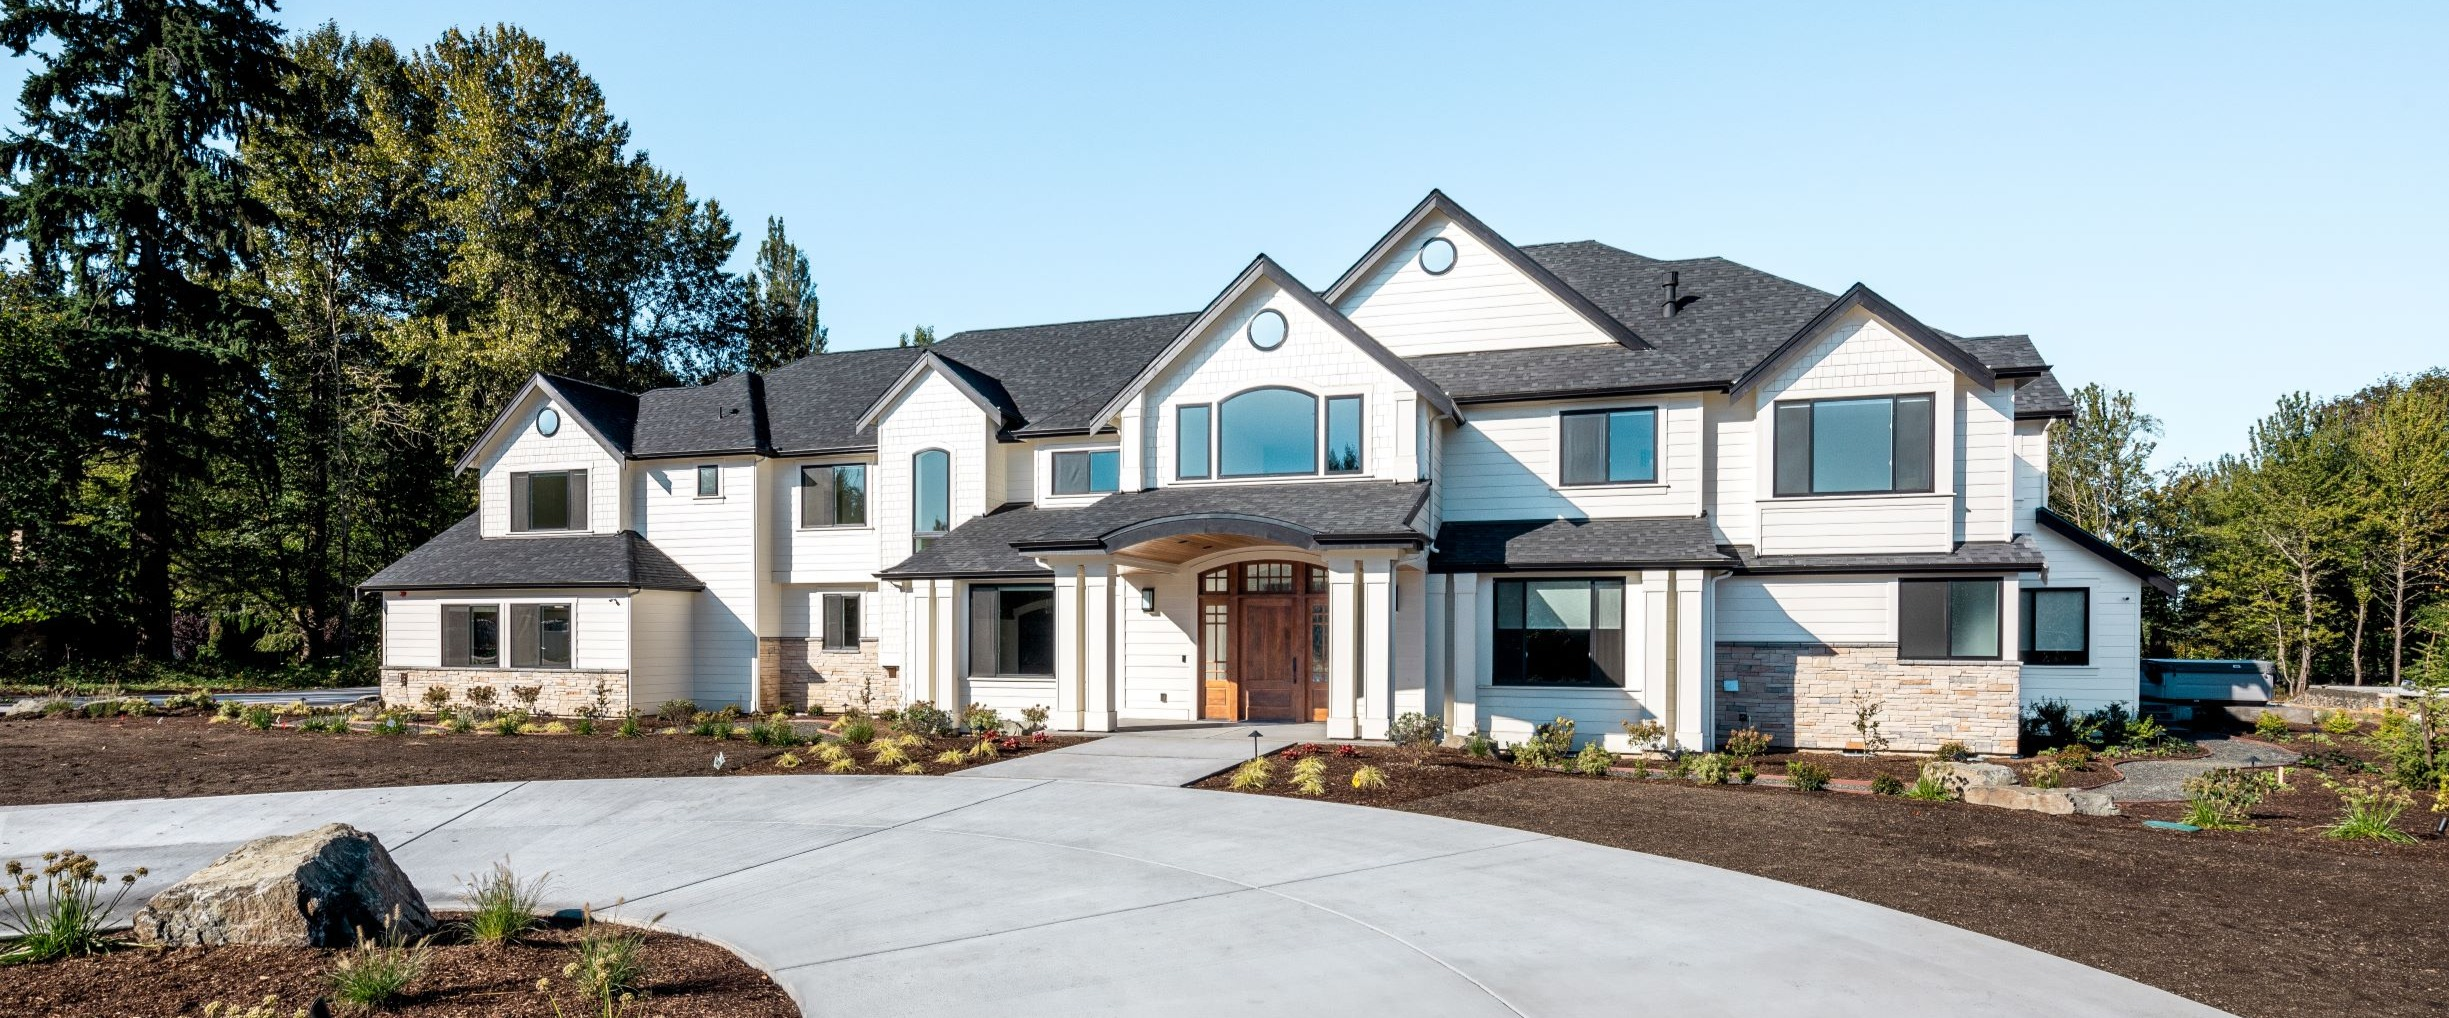 Woodinville-front_edited